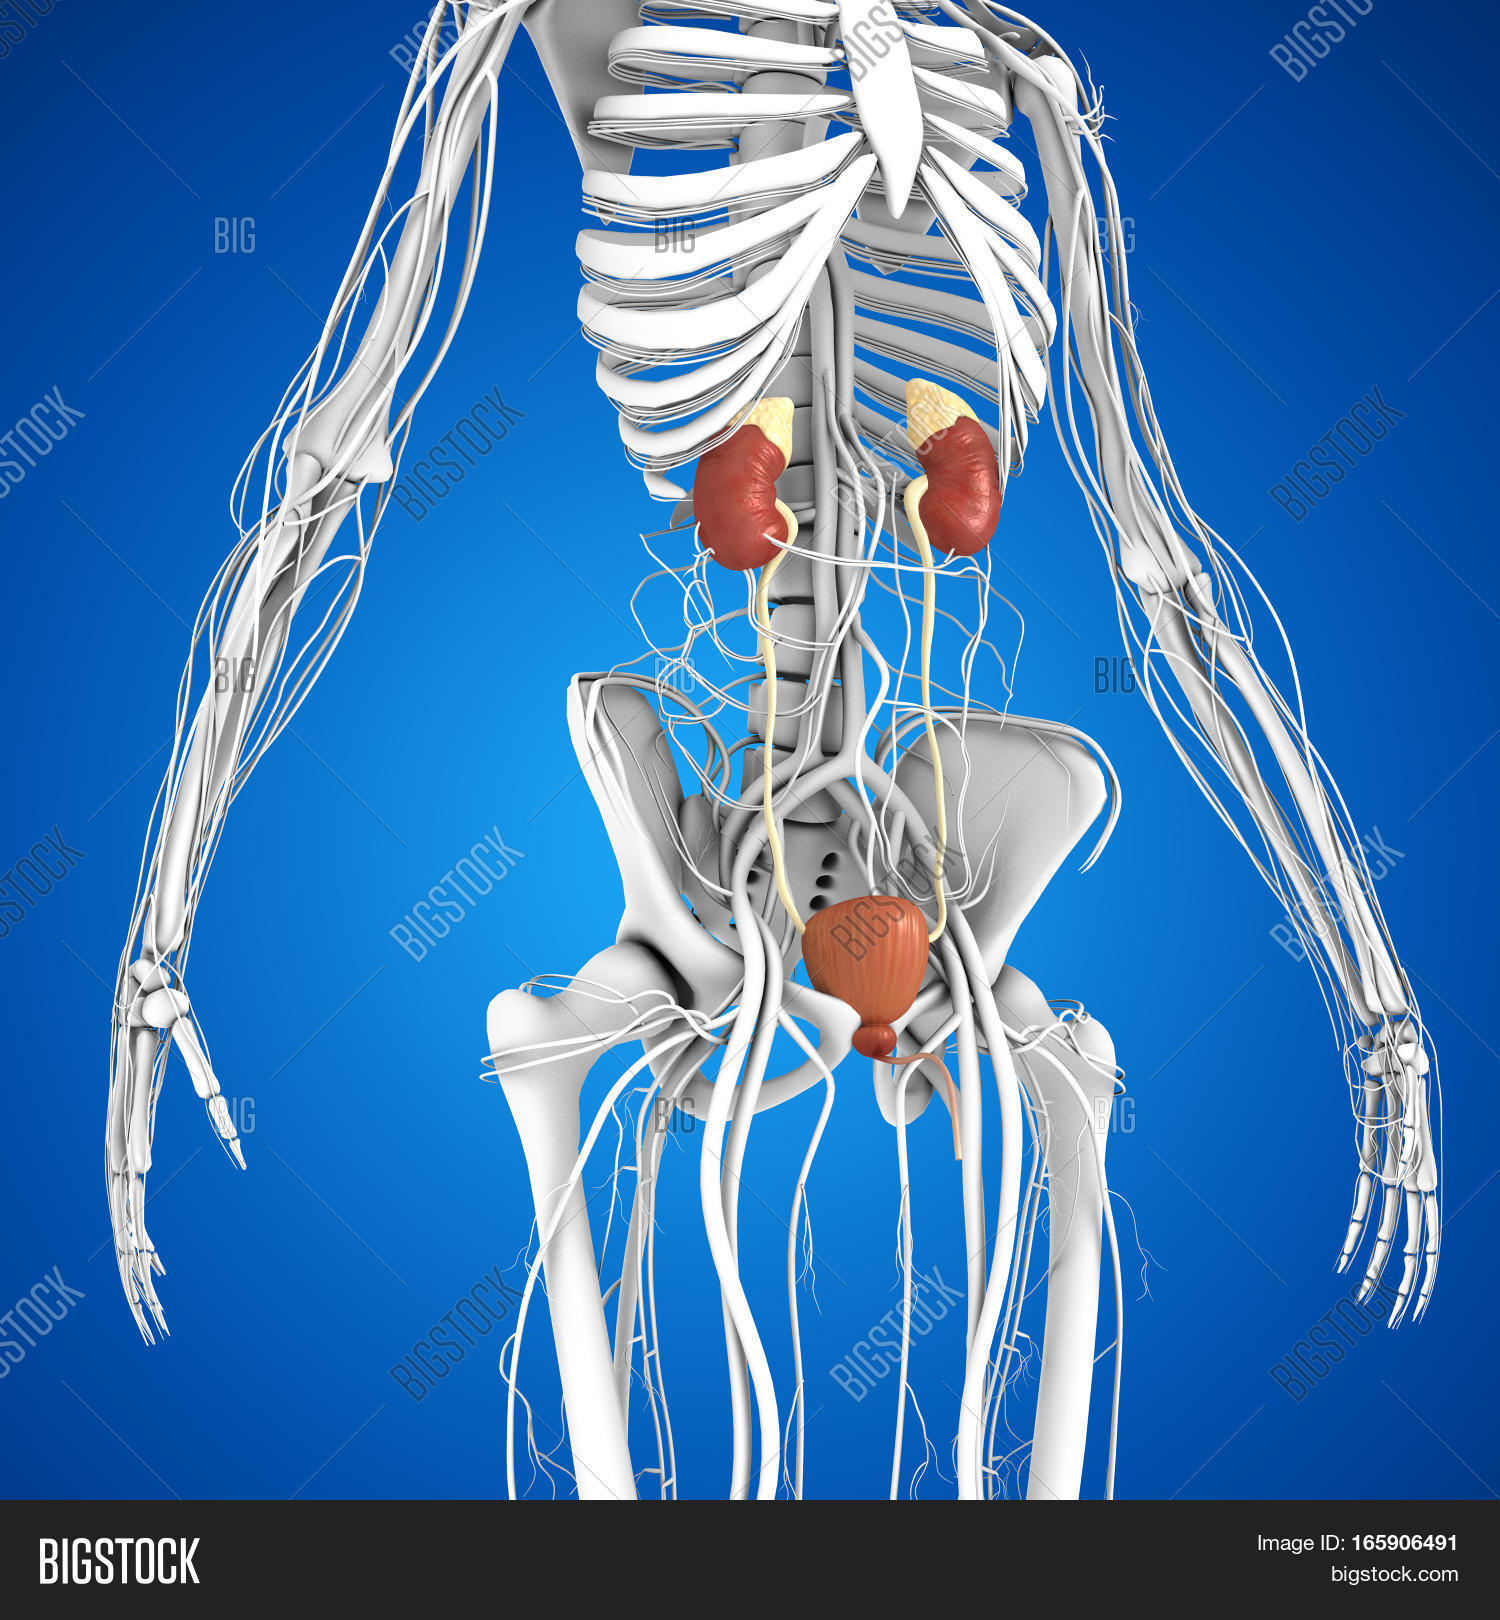 Kidneys Located Image Photo Free Trial Bigstock